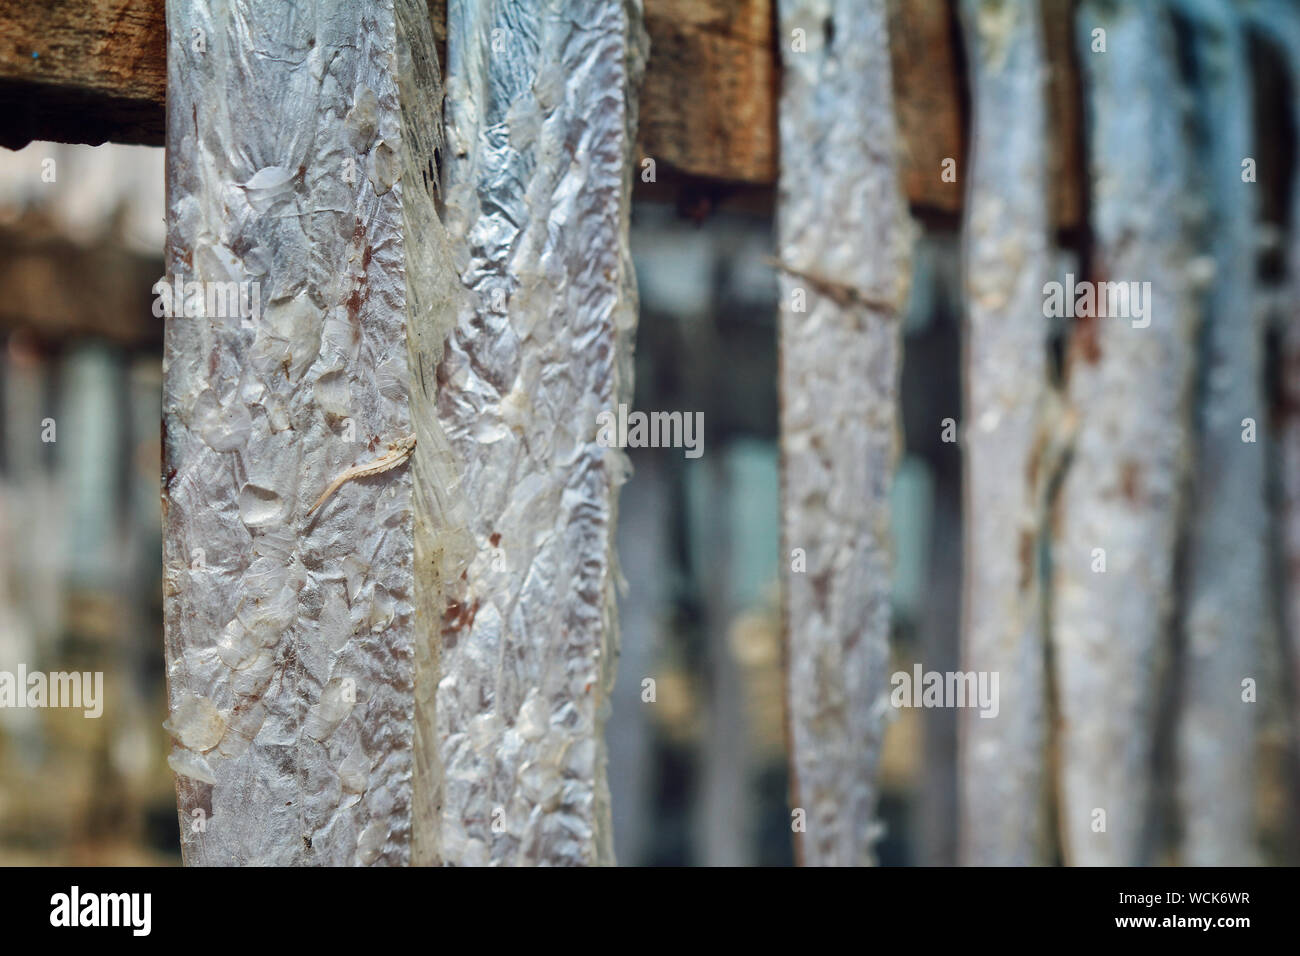 Bangladesh. 07th Jan, 2019. Dry fish industry of Bangladesh is an emerging one and it is providing a huge positive impact to the financial zone of this country. (Photo by Rajiul Huda Dipto/Pacific Press) Credit: Pacific Press Agency/Alamy Live News Stock Photo